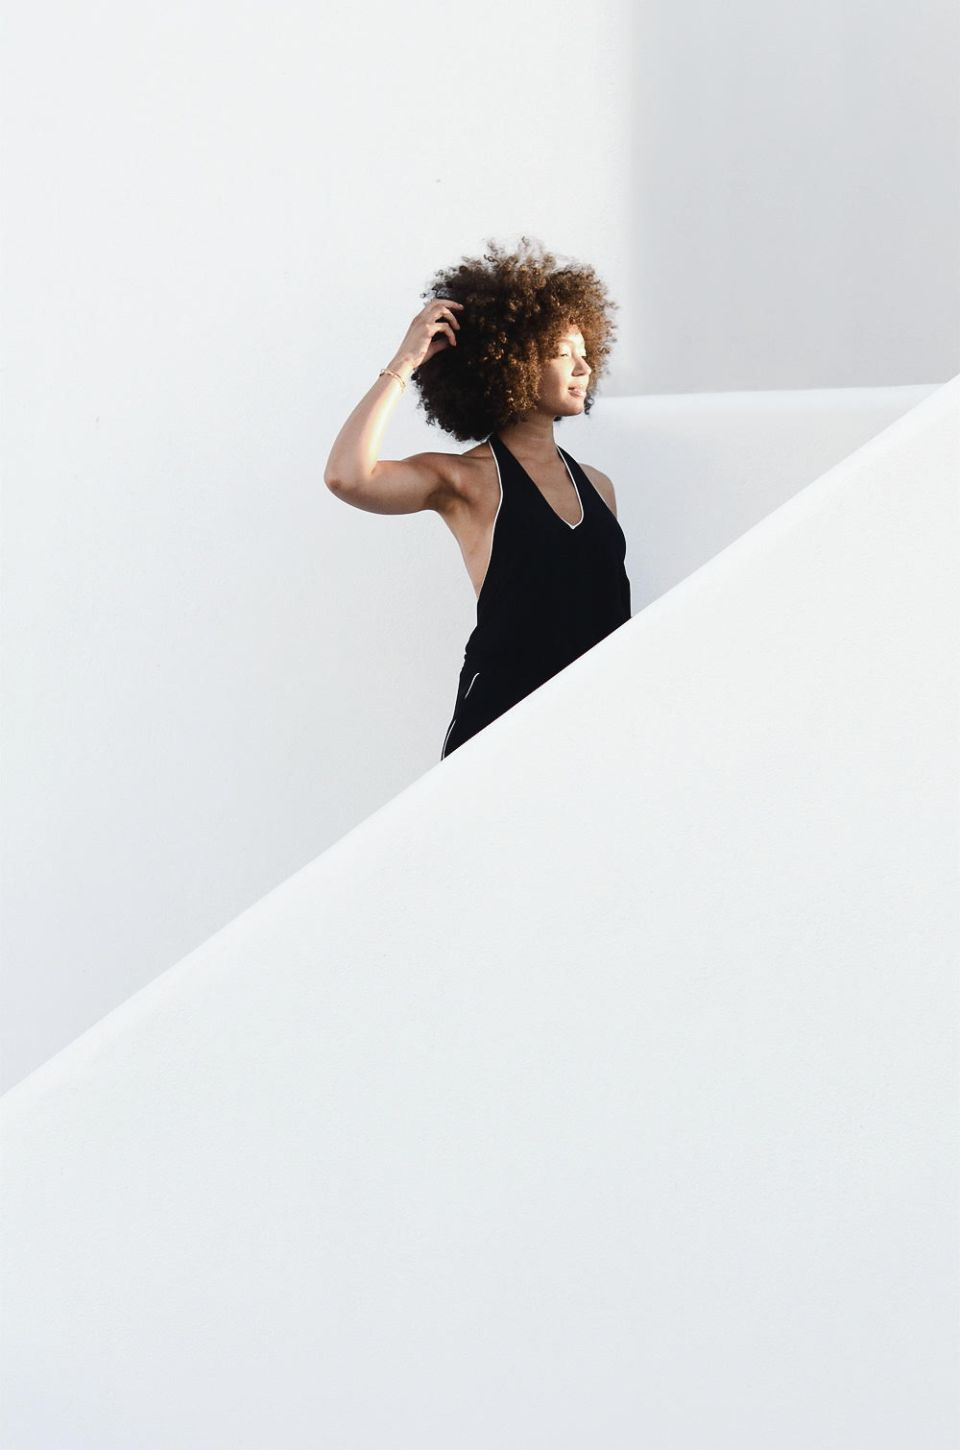 mercredie-blog-mode-geneve-suisse-switzerland-geneva-blogger-swiss-h&m-jumpsuit-combinaison-afro-natural-hair-cheveux-frises-naturels-mykonos-absolut-suites-escalier-greece